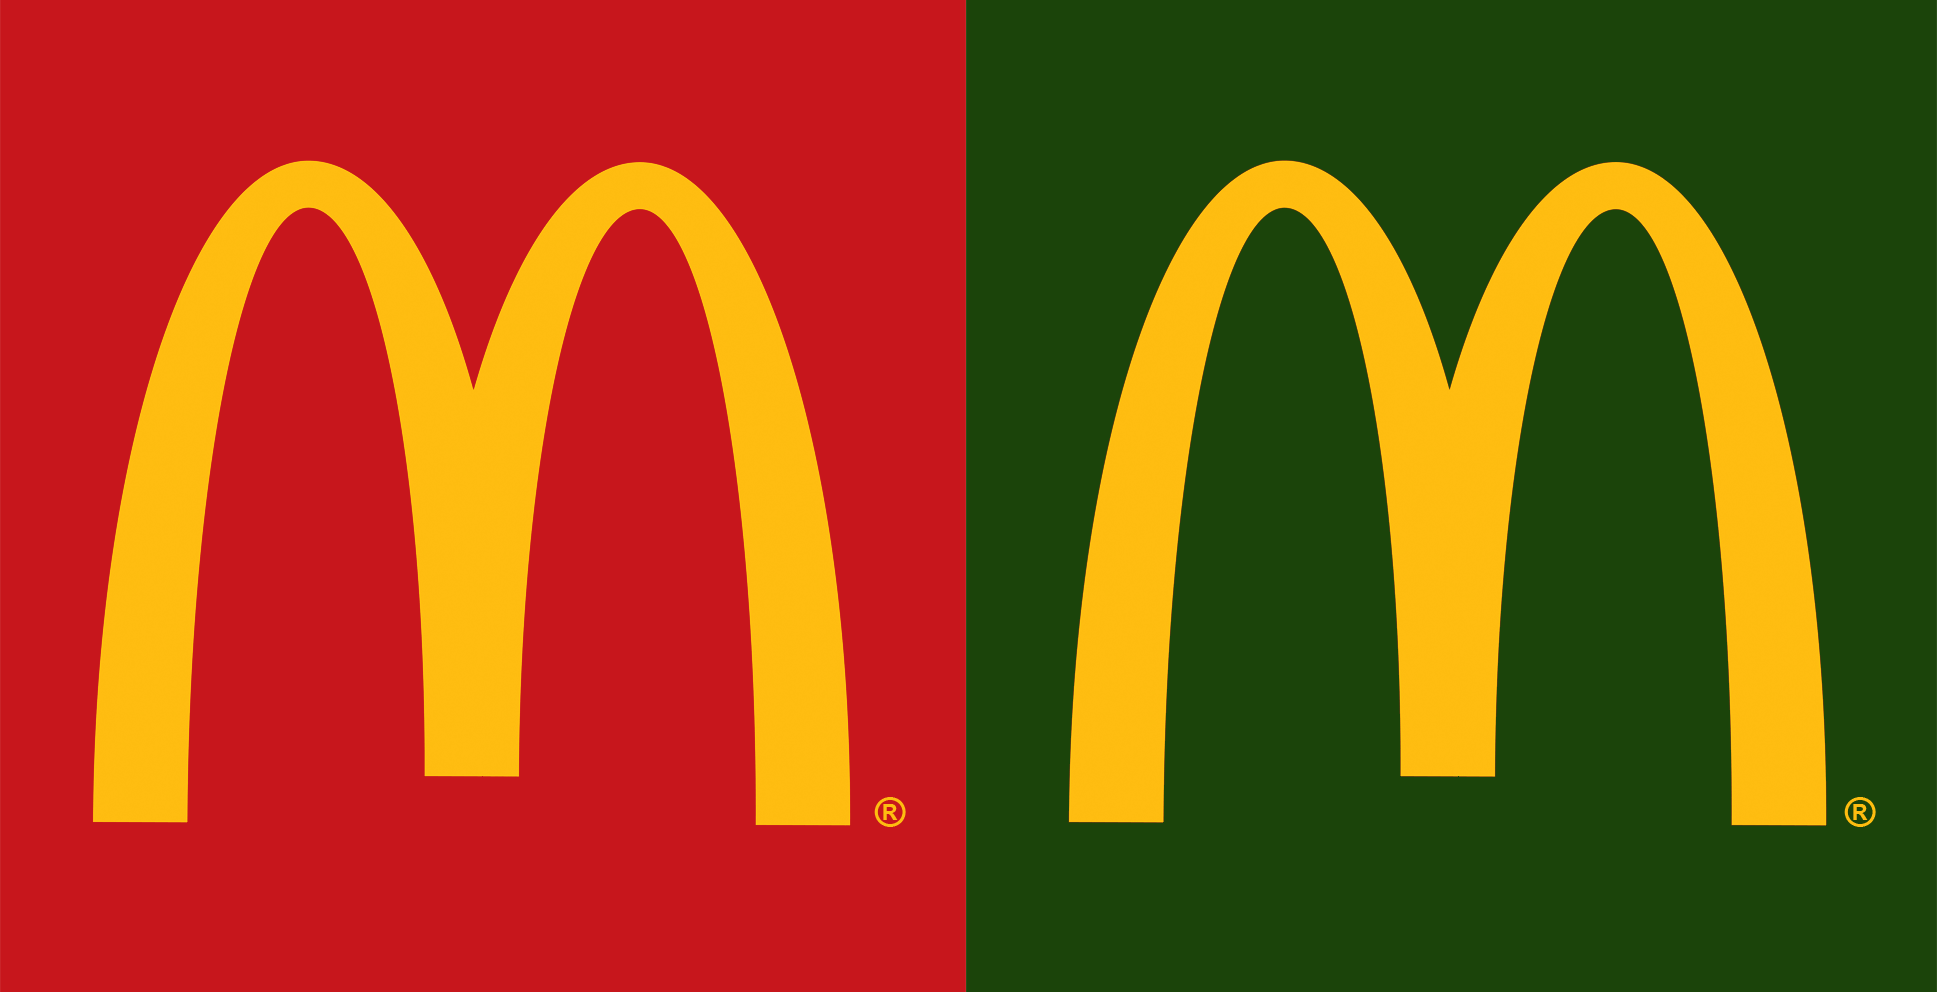 McDonalds-colors